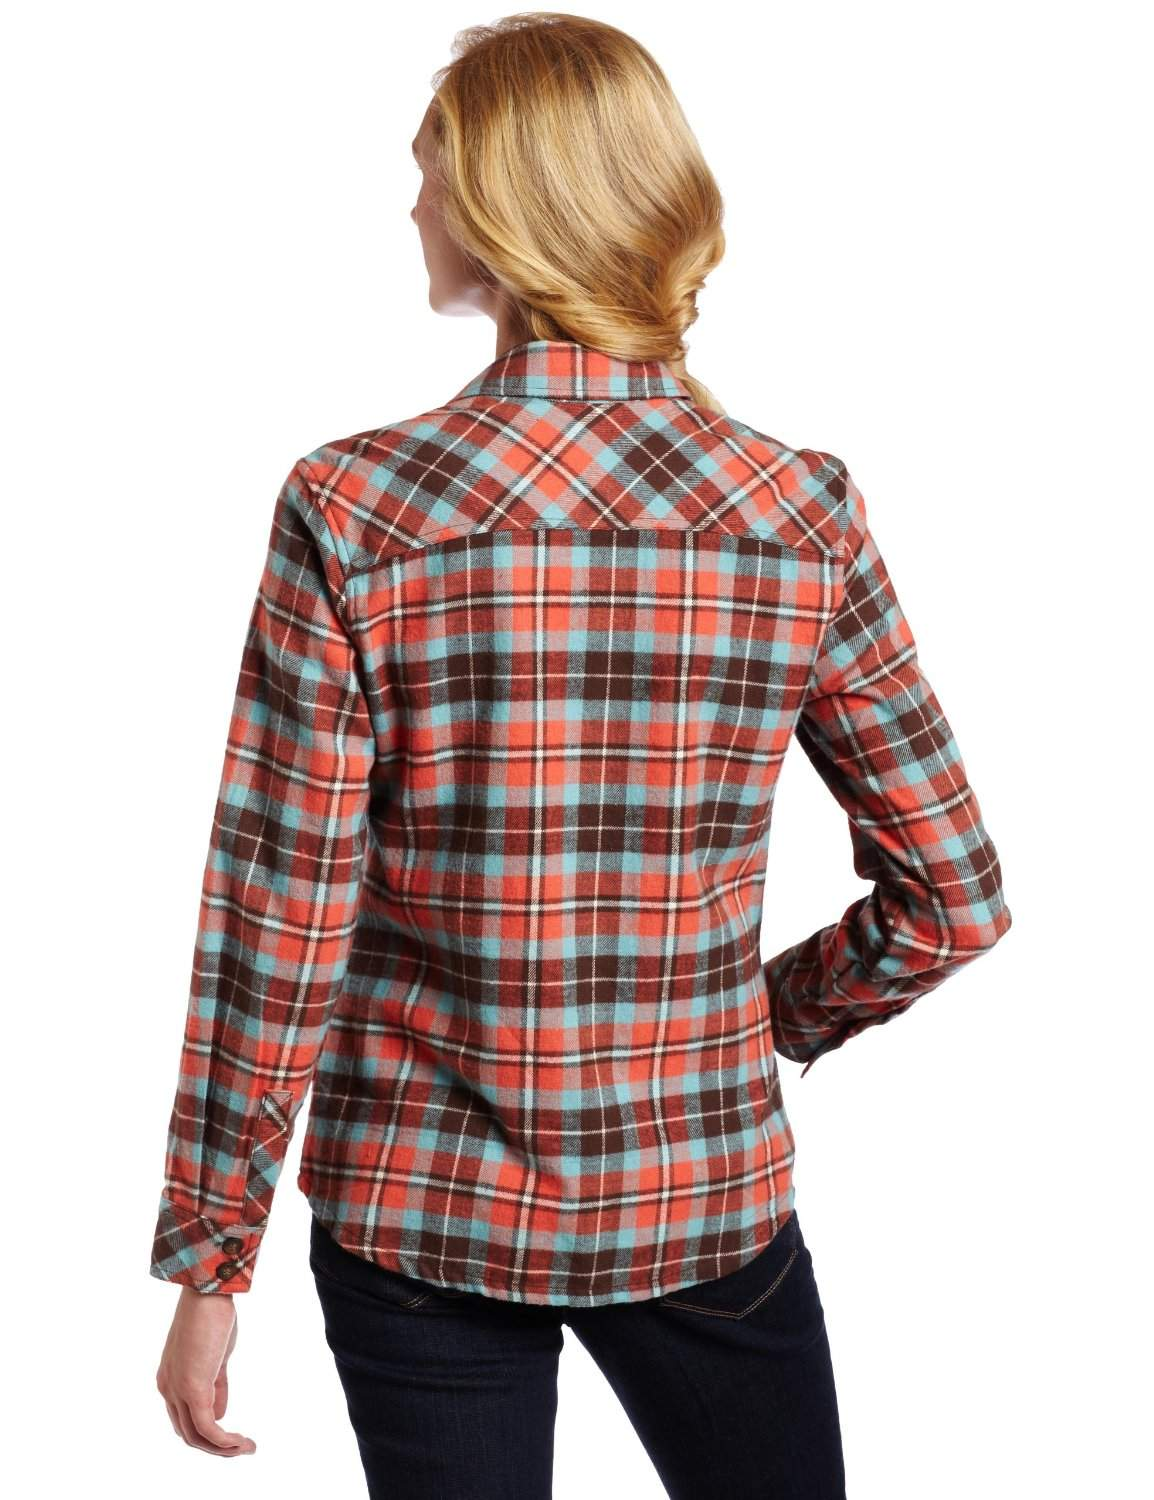 Find great deals on eBay for cheap flannel. Shop with confidence.